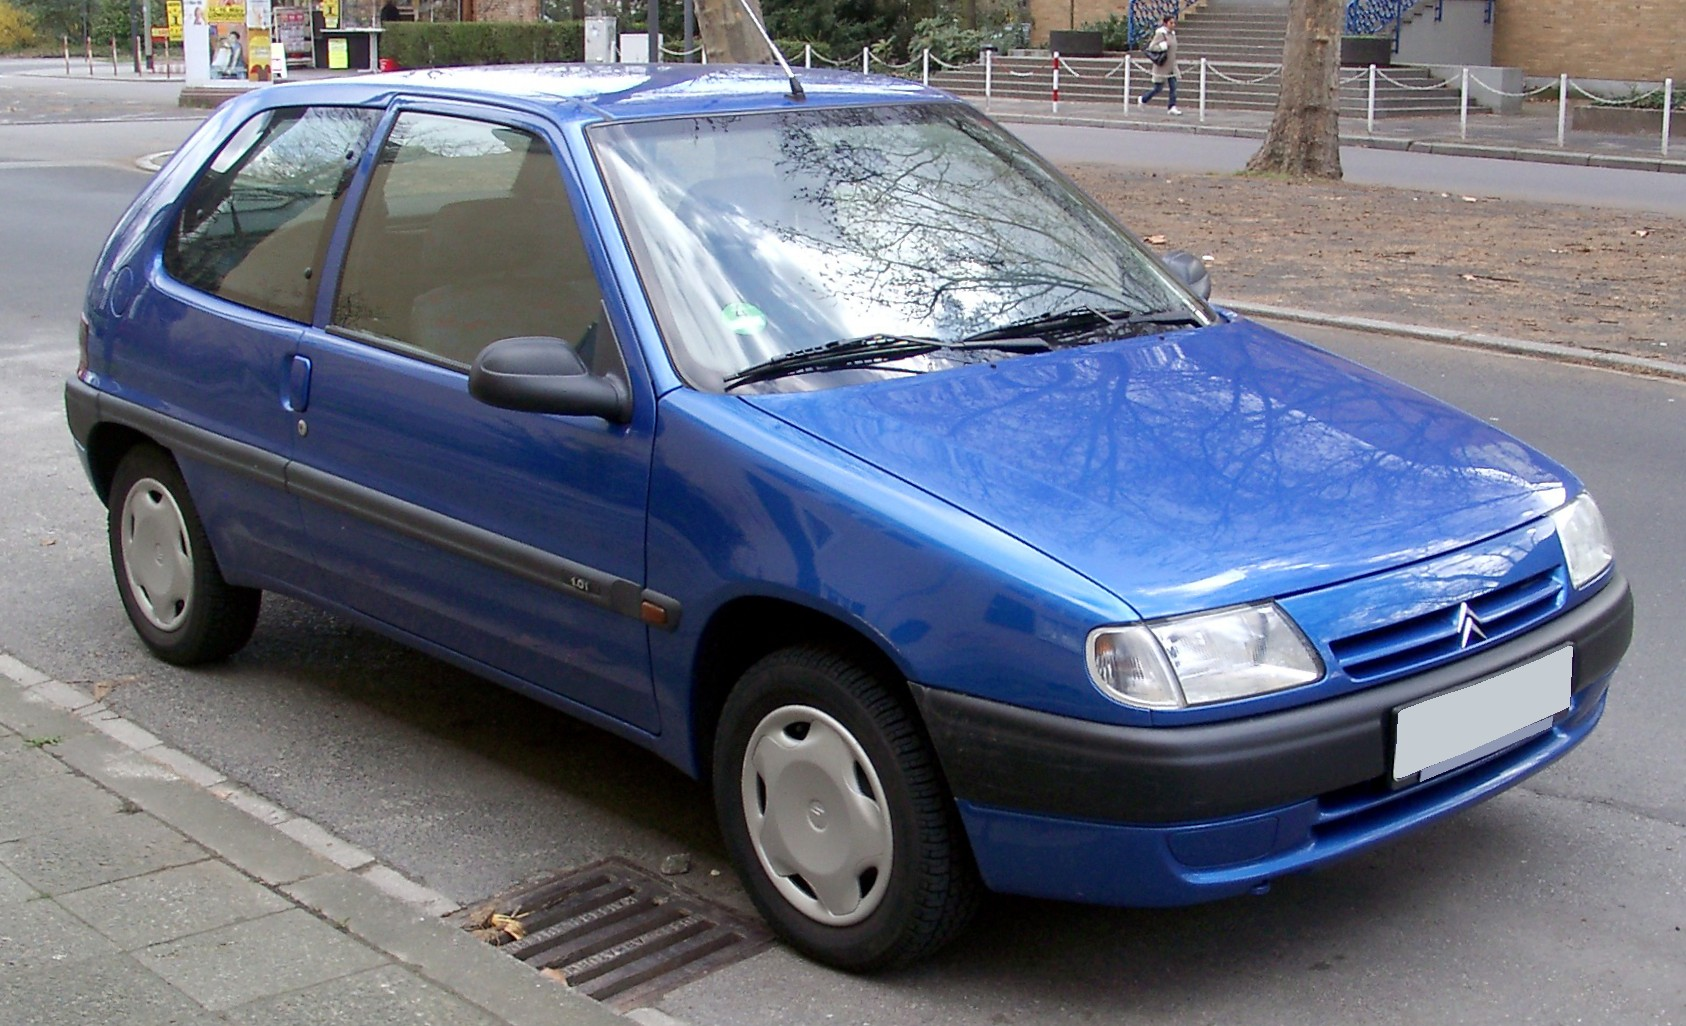 1998 Citroen Ax Photos Informations Articles Wiring Diagram Picture Cars Findhdwallpapercom 7